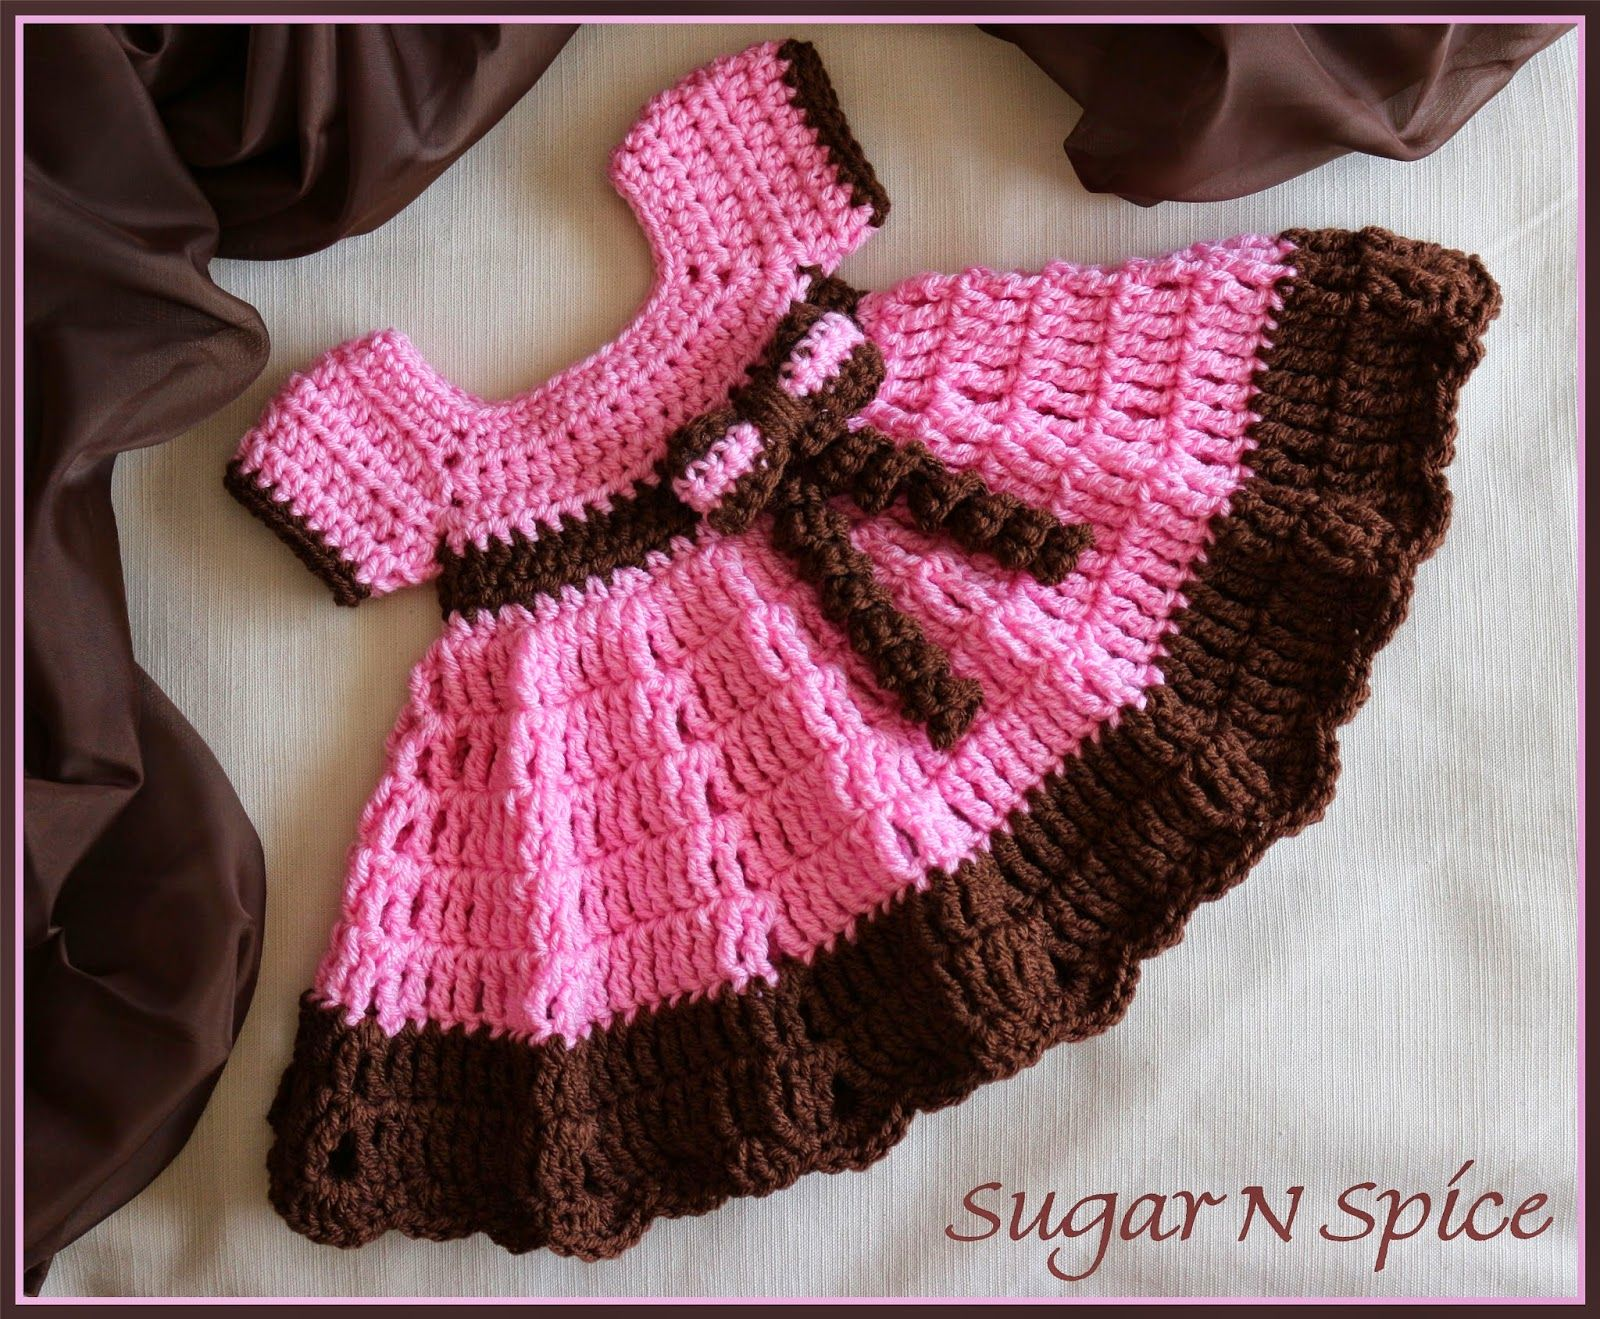 This Housewife Life: Sugar N Spice Dress ~FREE PATTERN~ pattern at ...